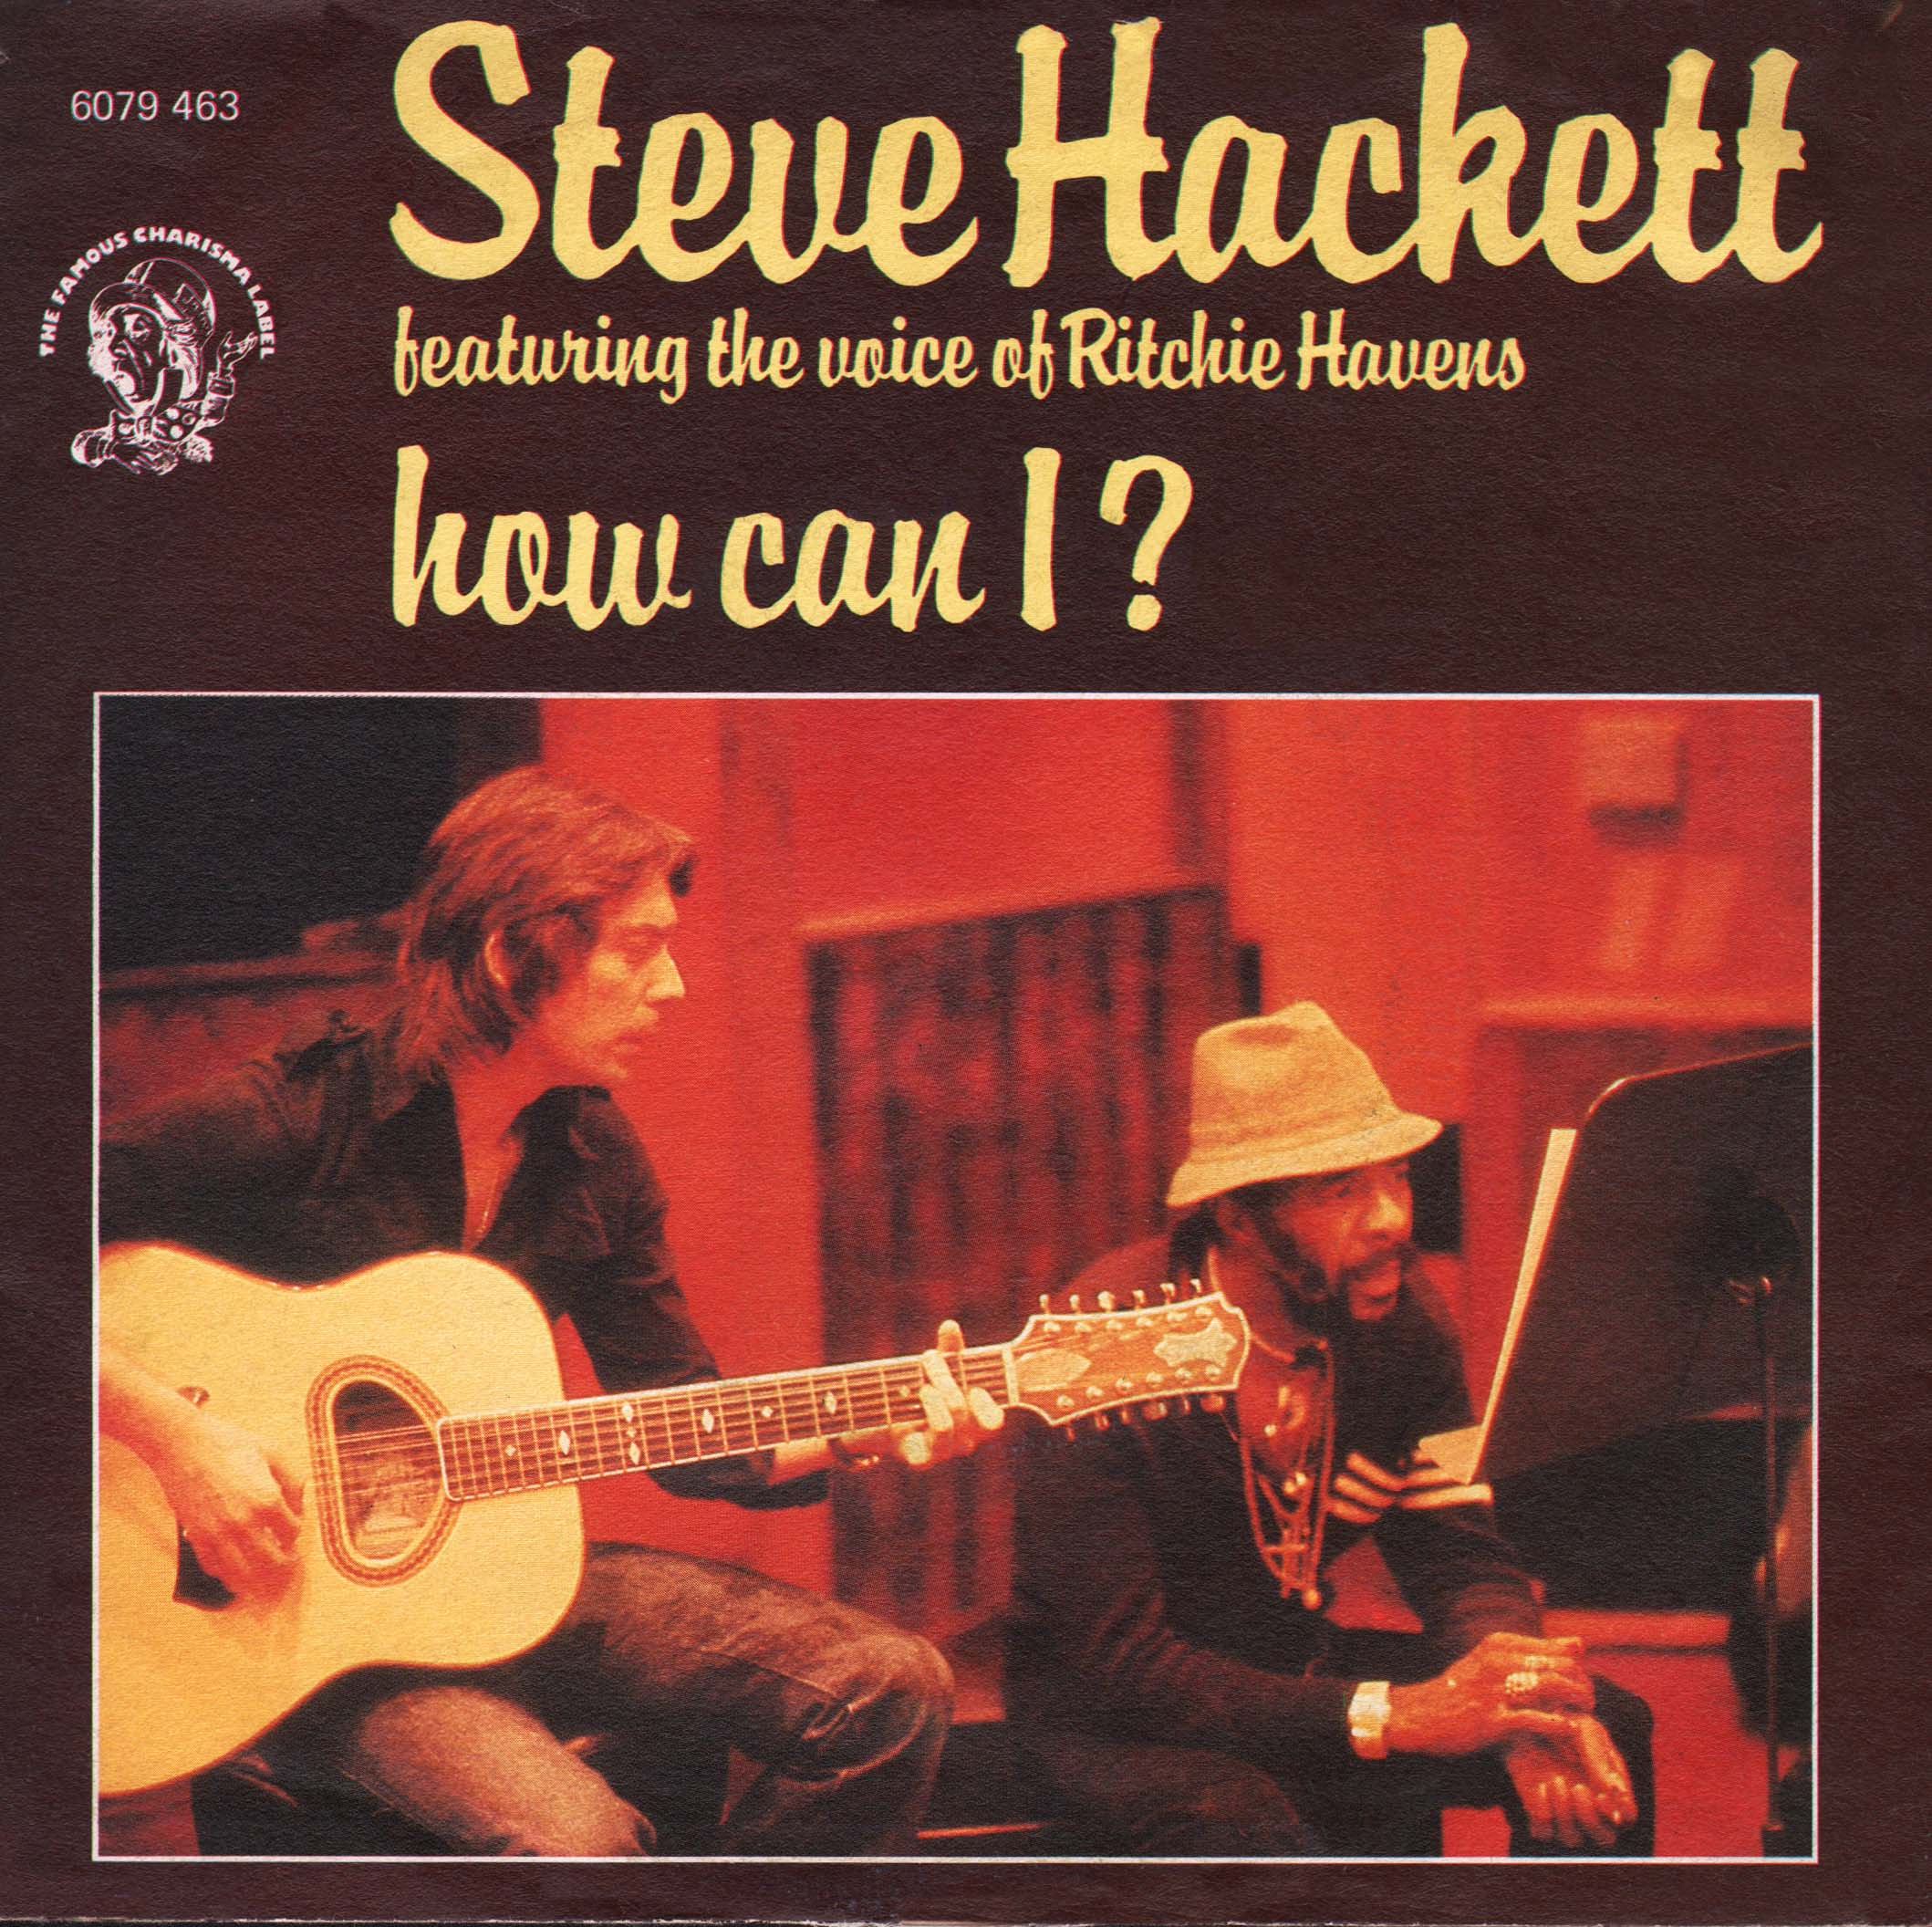 hackett singles Are celebrities more likely to divorce or break up earlier this week news reports surfaced that steve hackett, 68, and his partner had split up is the british musician really single.